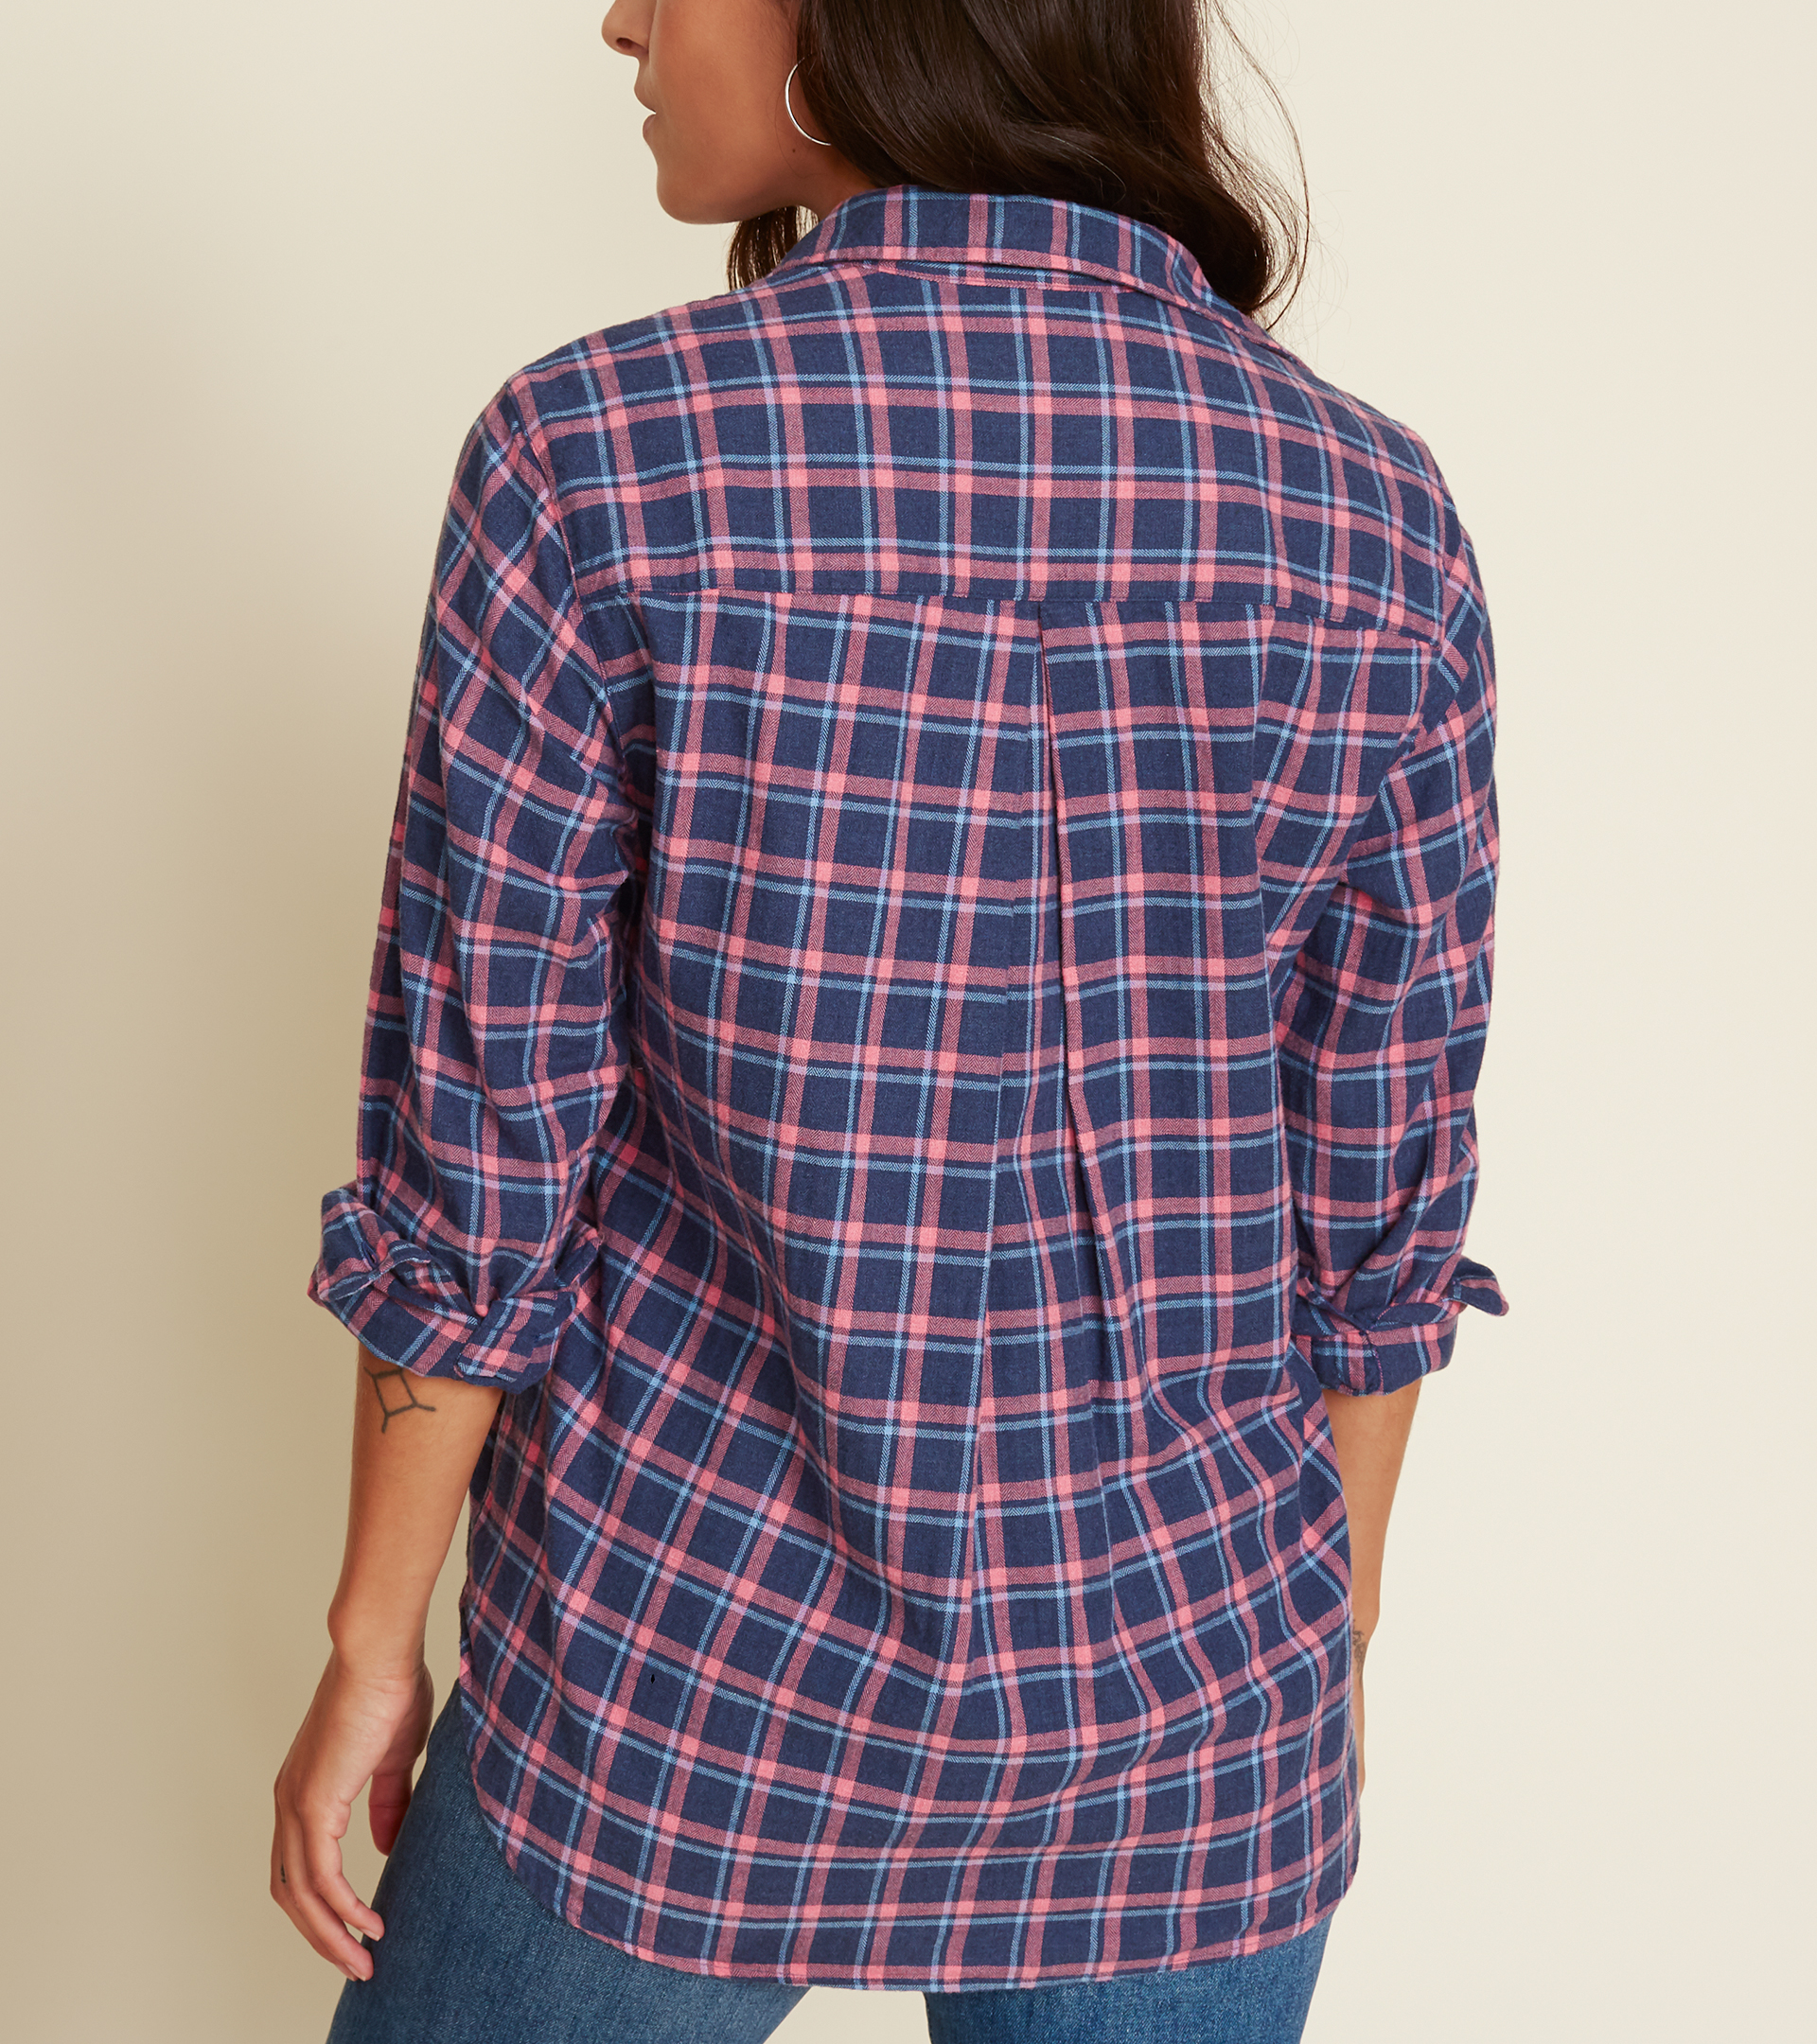 Image of The Hero Navy with Pink and White Plaid, Feathered Flannel Sale